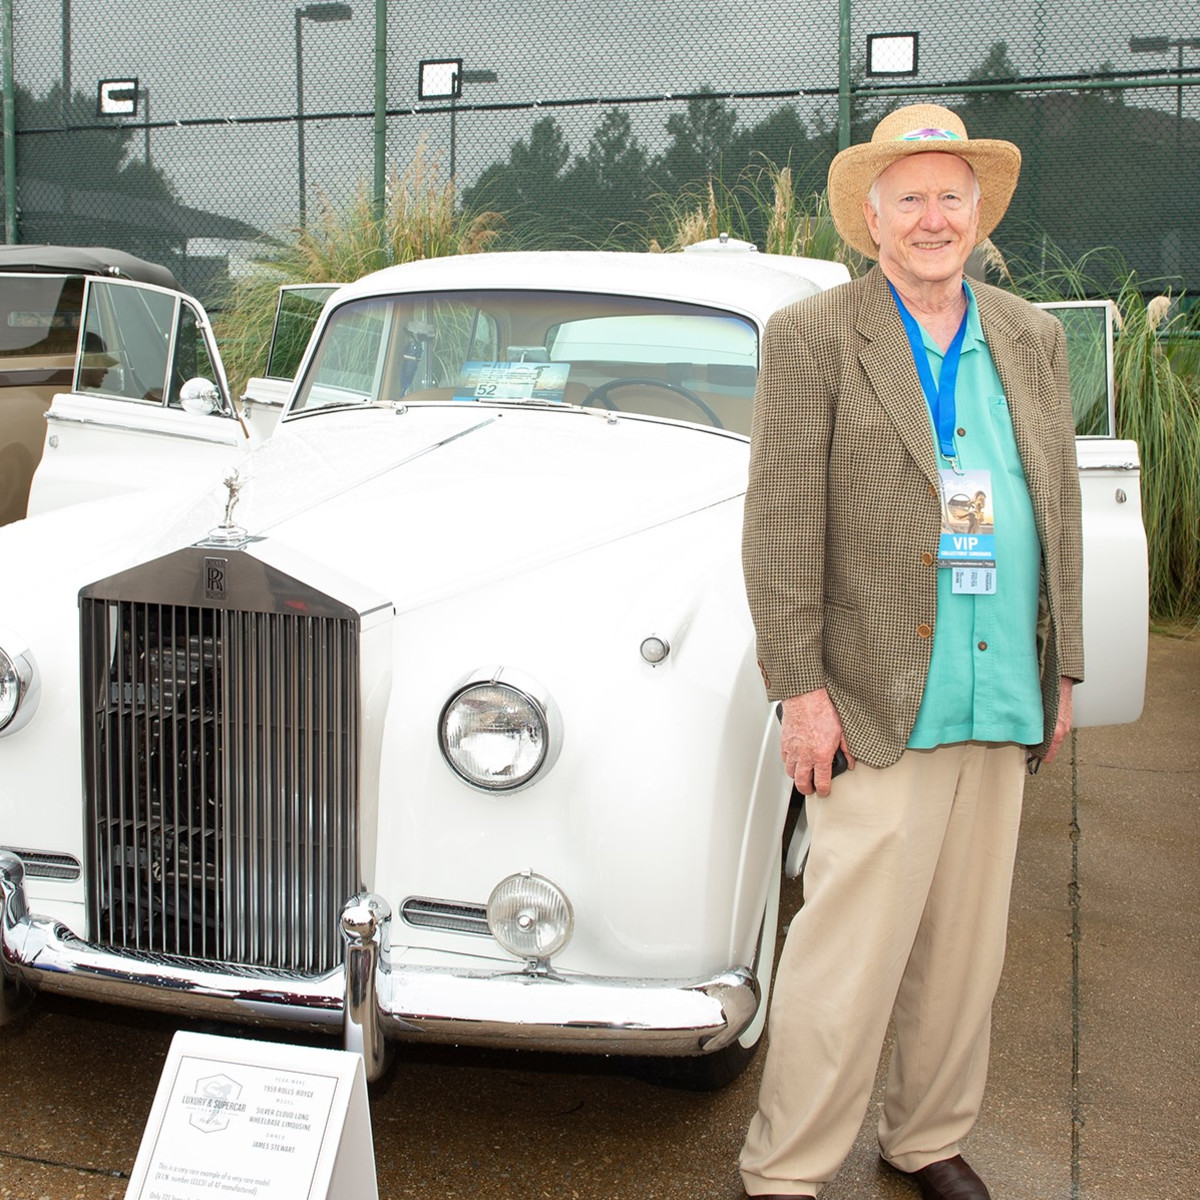 1st in Class British Classic  winner James Stewart with his 1959 Rolls-Royce Silver Cloud Limo